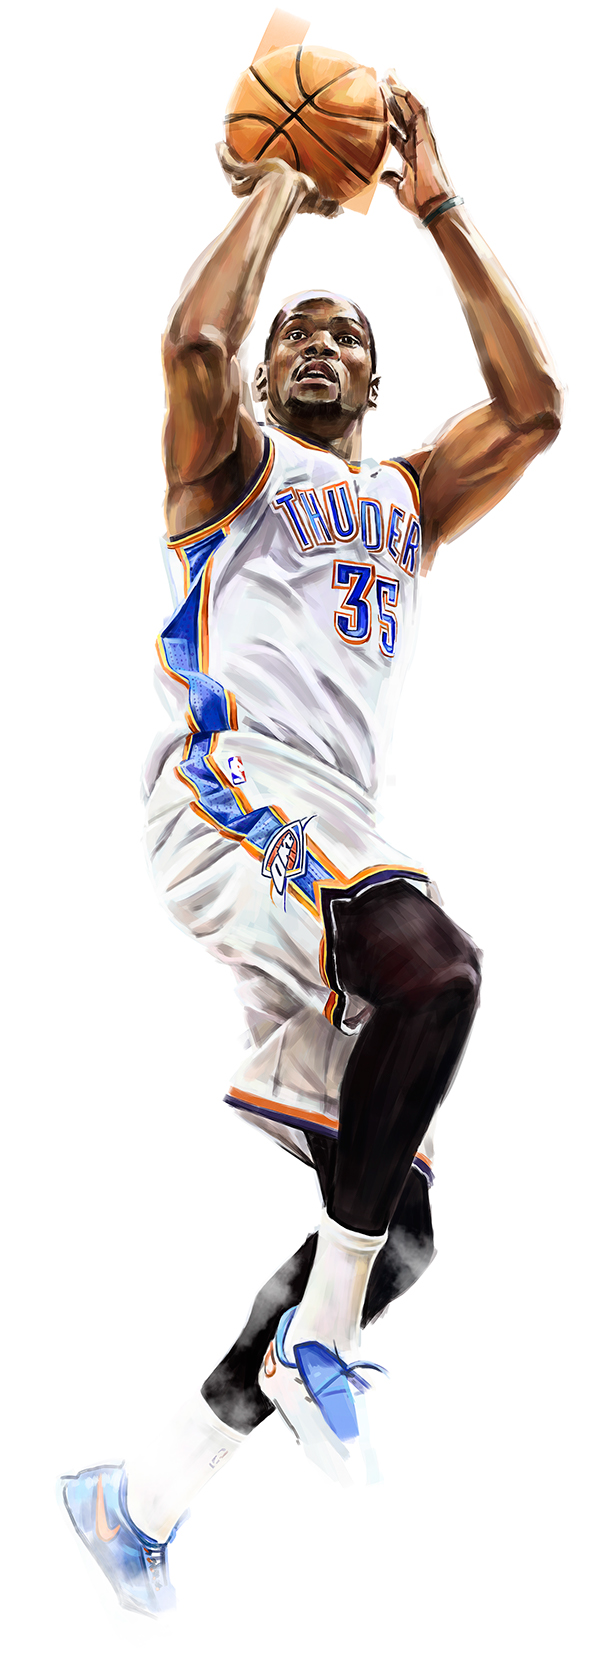 Kevin durant clipart thunder.